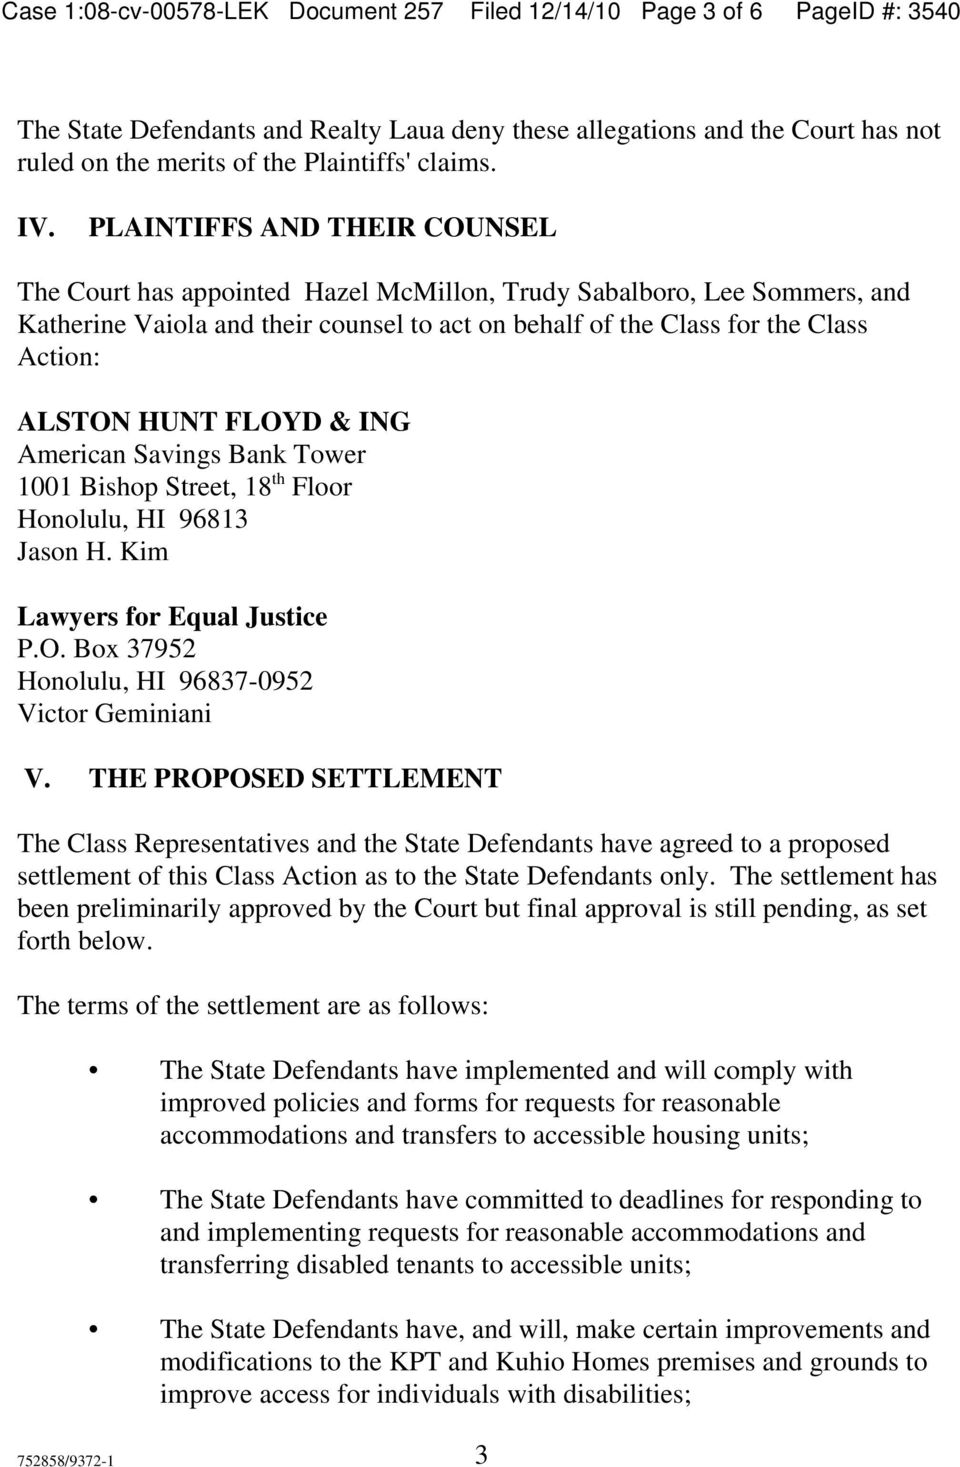 PLAINTIFFS AND THEIR COUNSEL The Court has appointed Hazel McMillon, Trudy Sabalboro, Lee Sommers, and Katherine Vaiola and their counsel to act on behalf of the Class for the Class Action: ALSTON